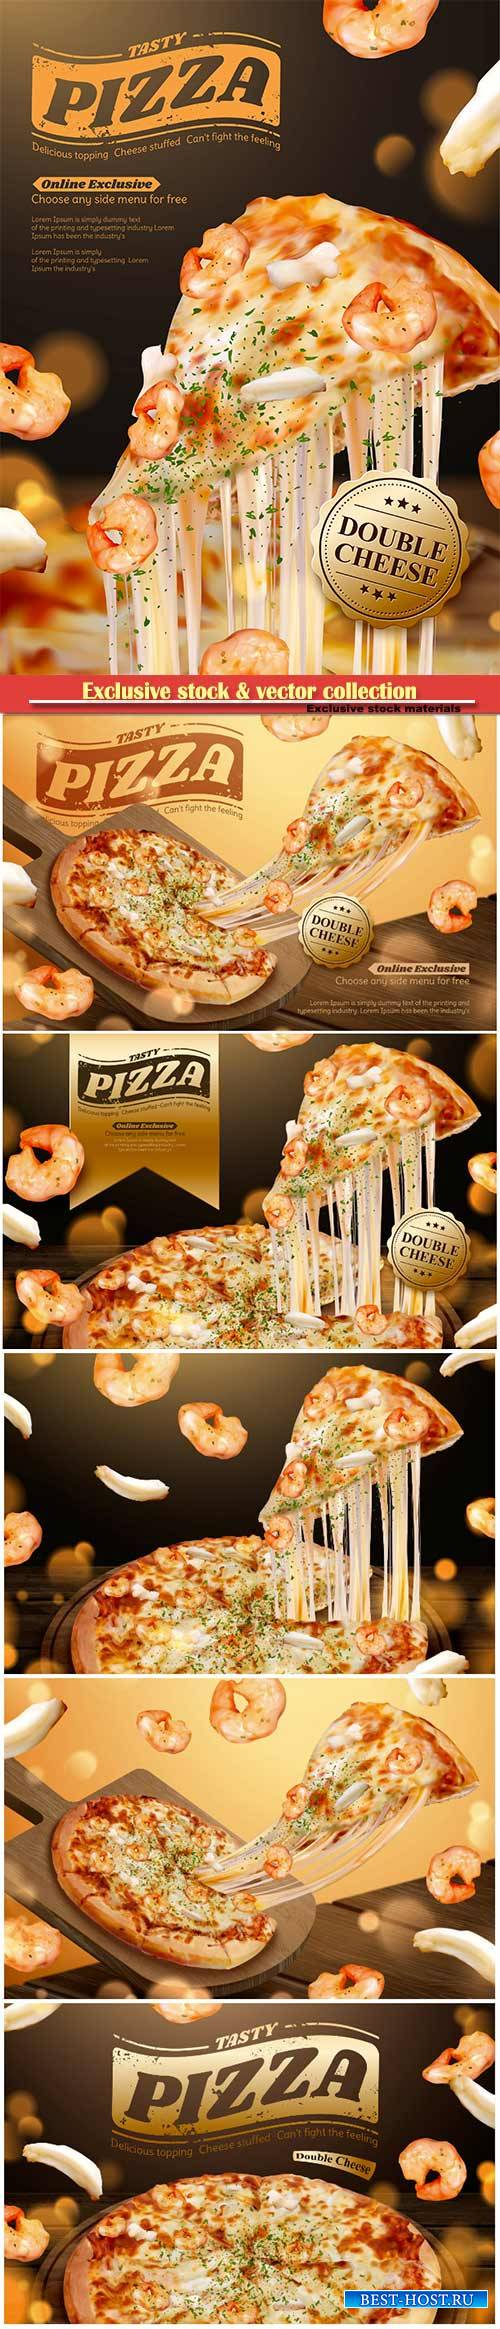 Tasty seafood pizza ads with stringy cheese in 3d illustration, shrimp and  ...